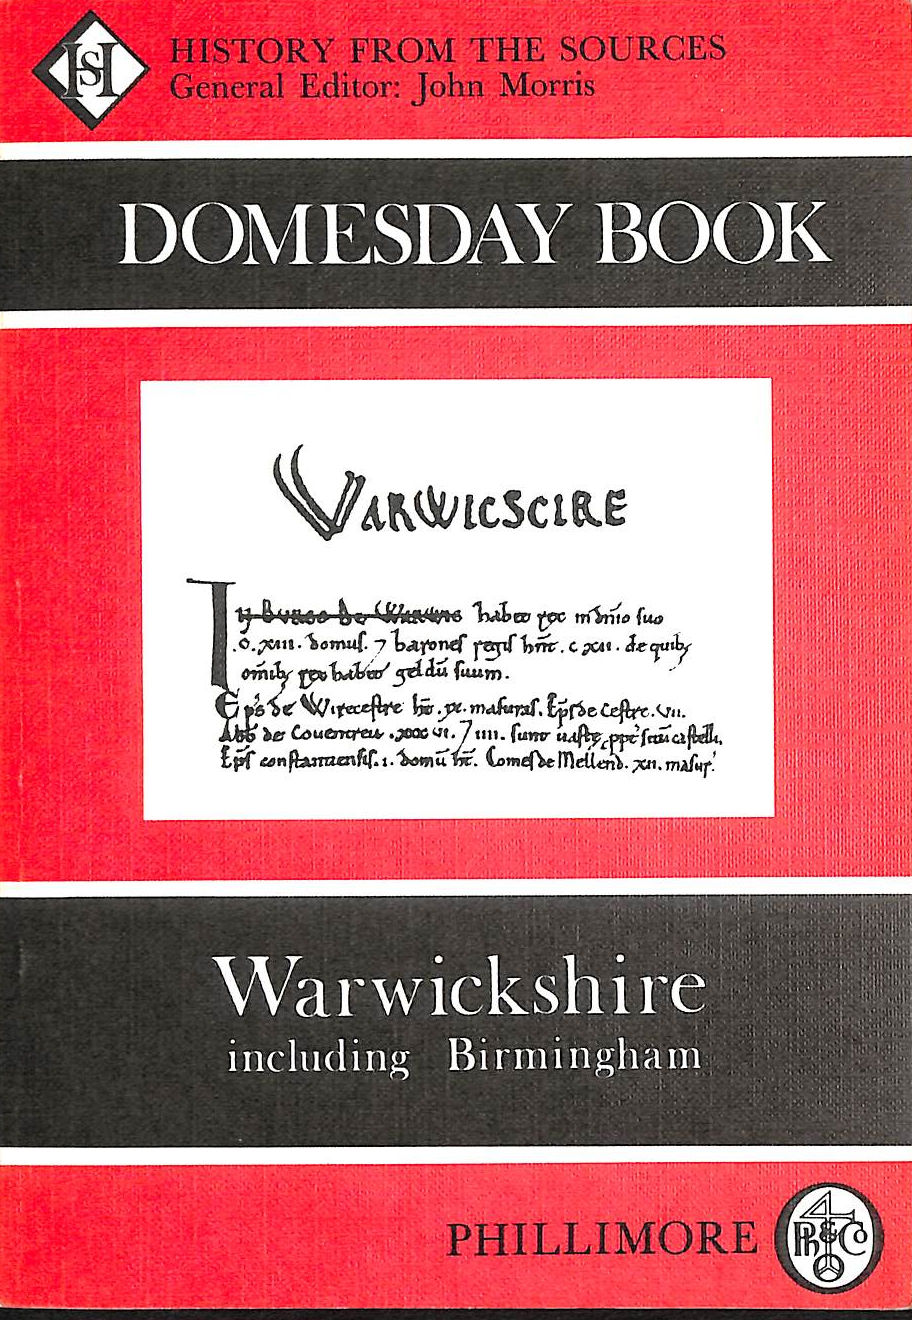 Image for The Domesday Book: Warwickshire (Domesday Books (Phillimore))